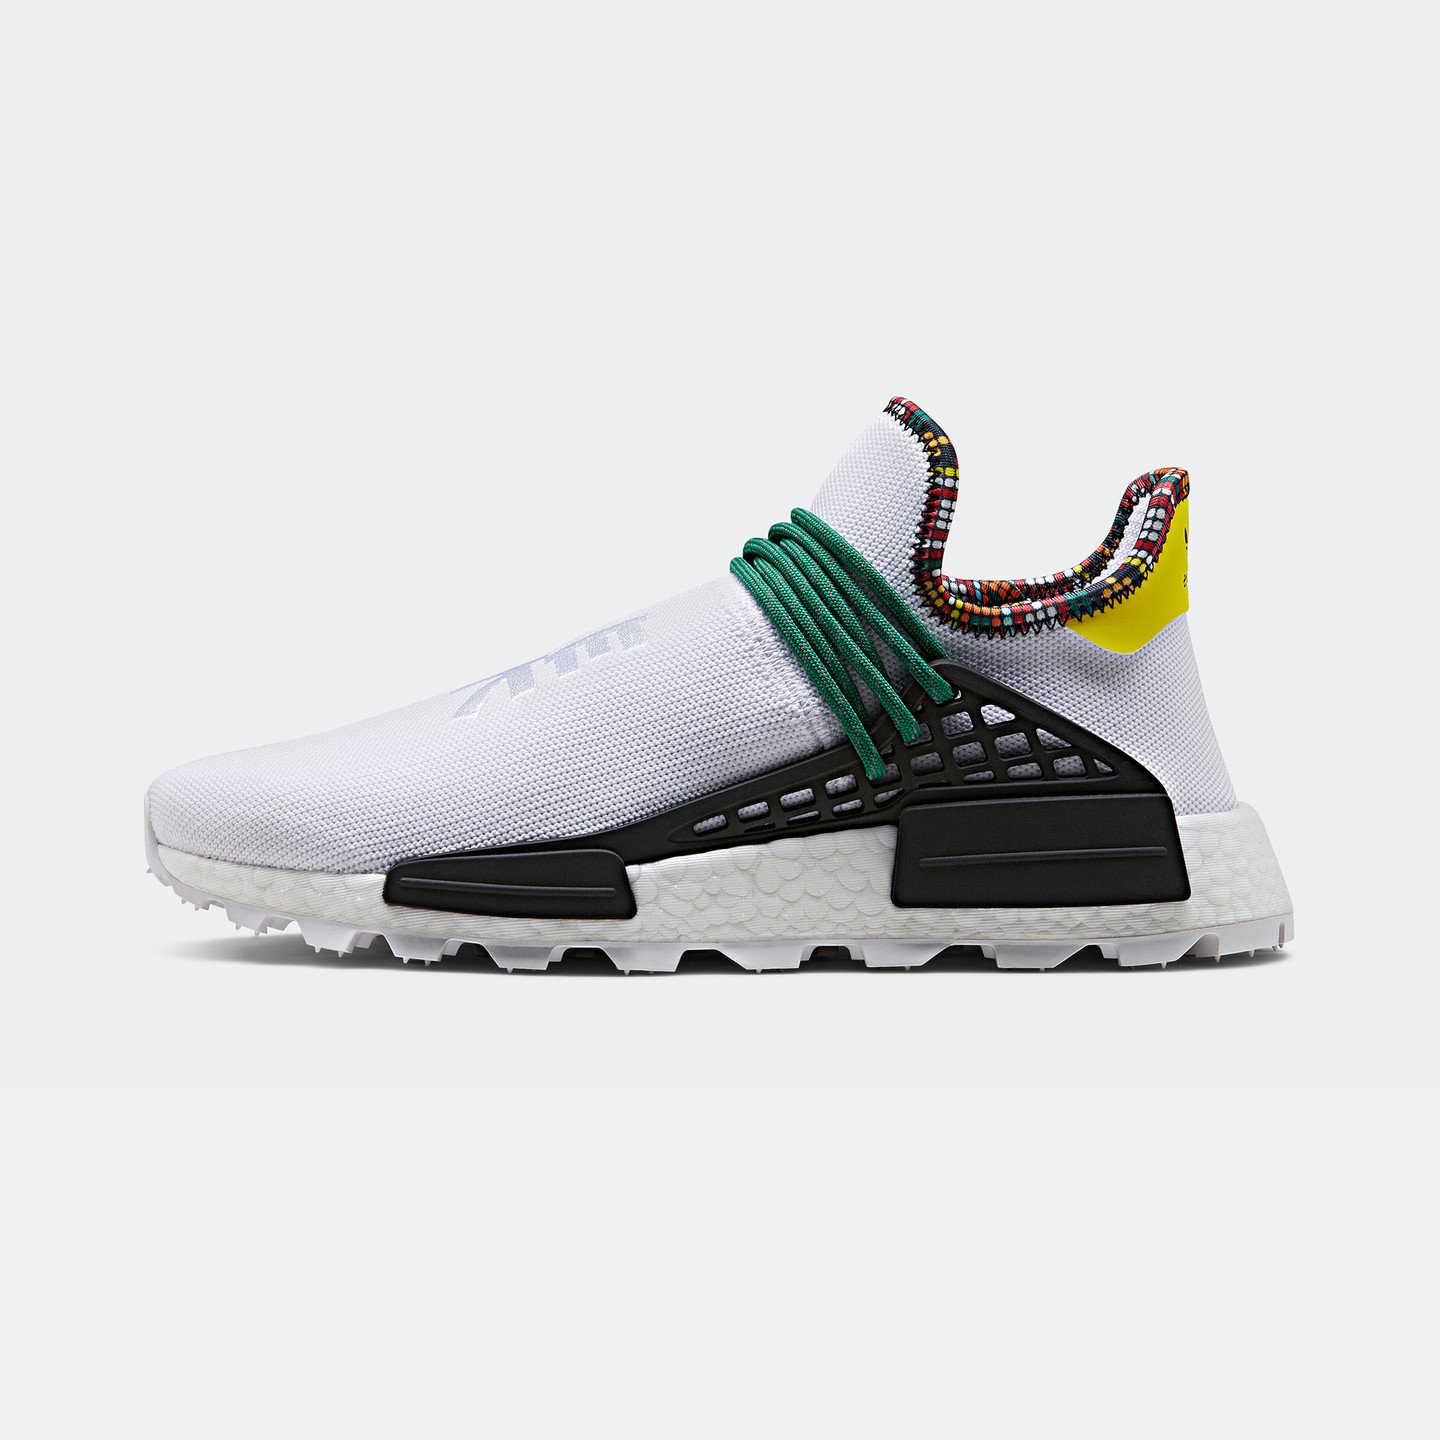 Adidas Pharrell Williams 'Solar HU' NMD Footwear White / Bold Green / Bright Yellow EE7583